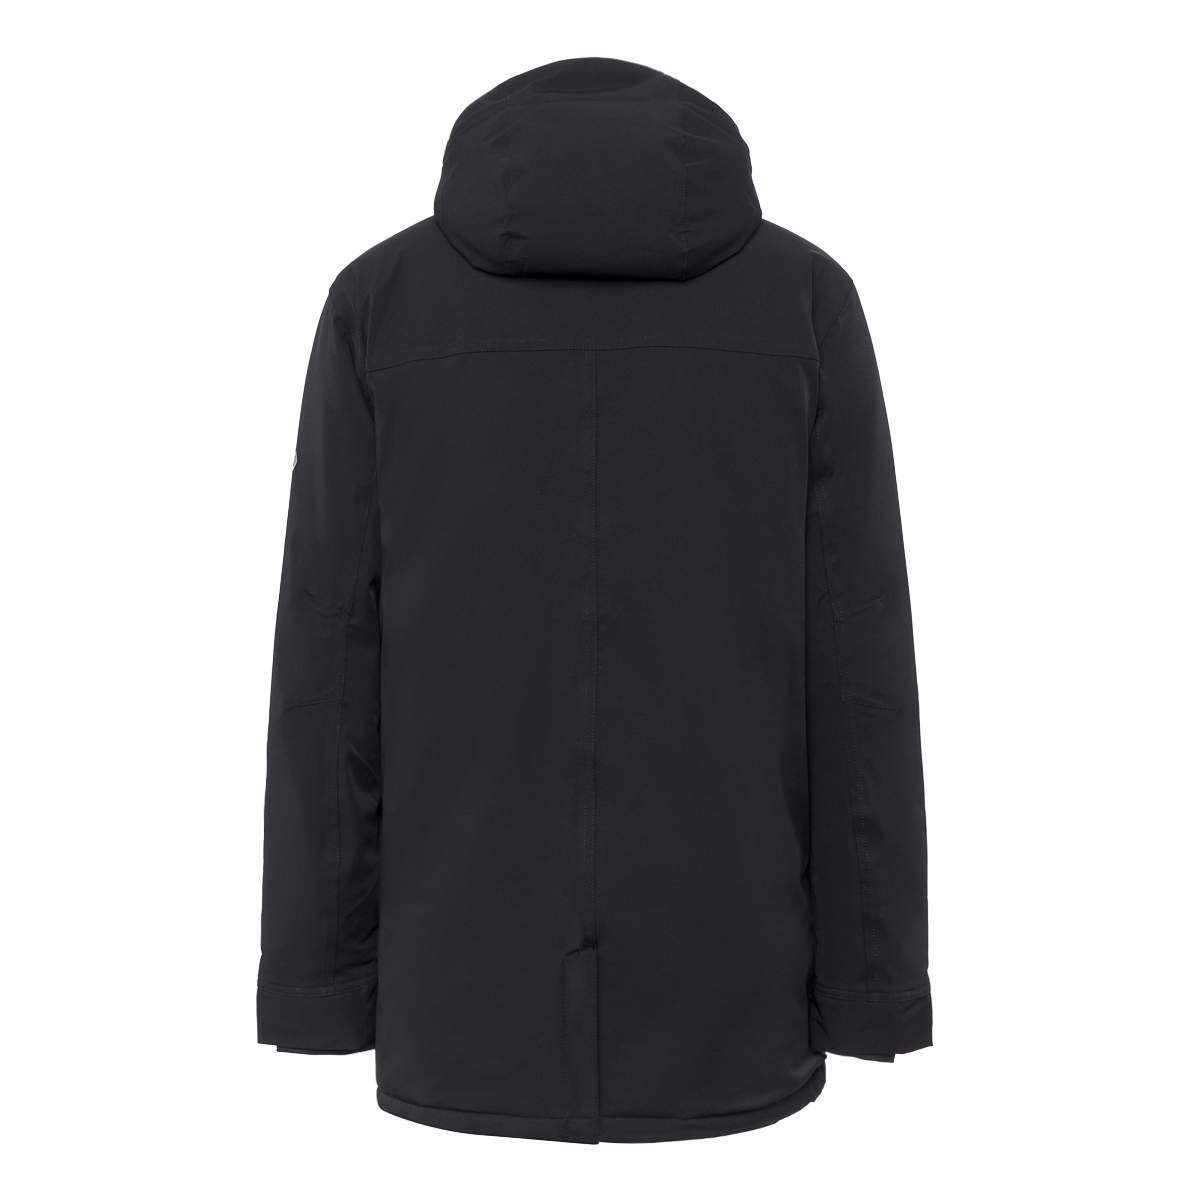 MAN'S BESIBERRI PARKA BLACK